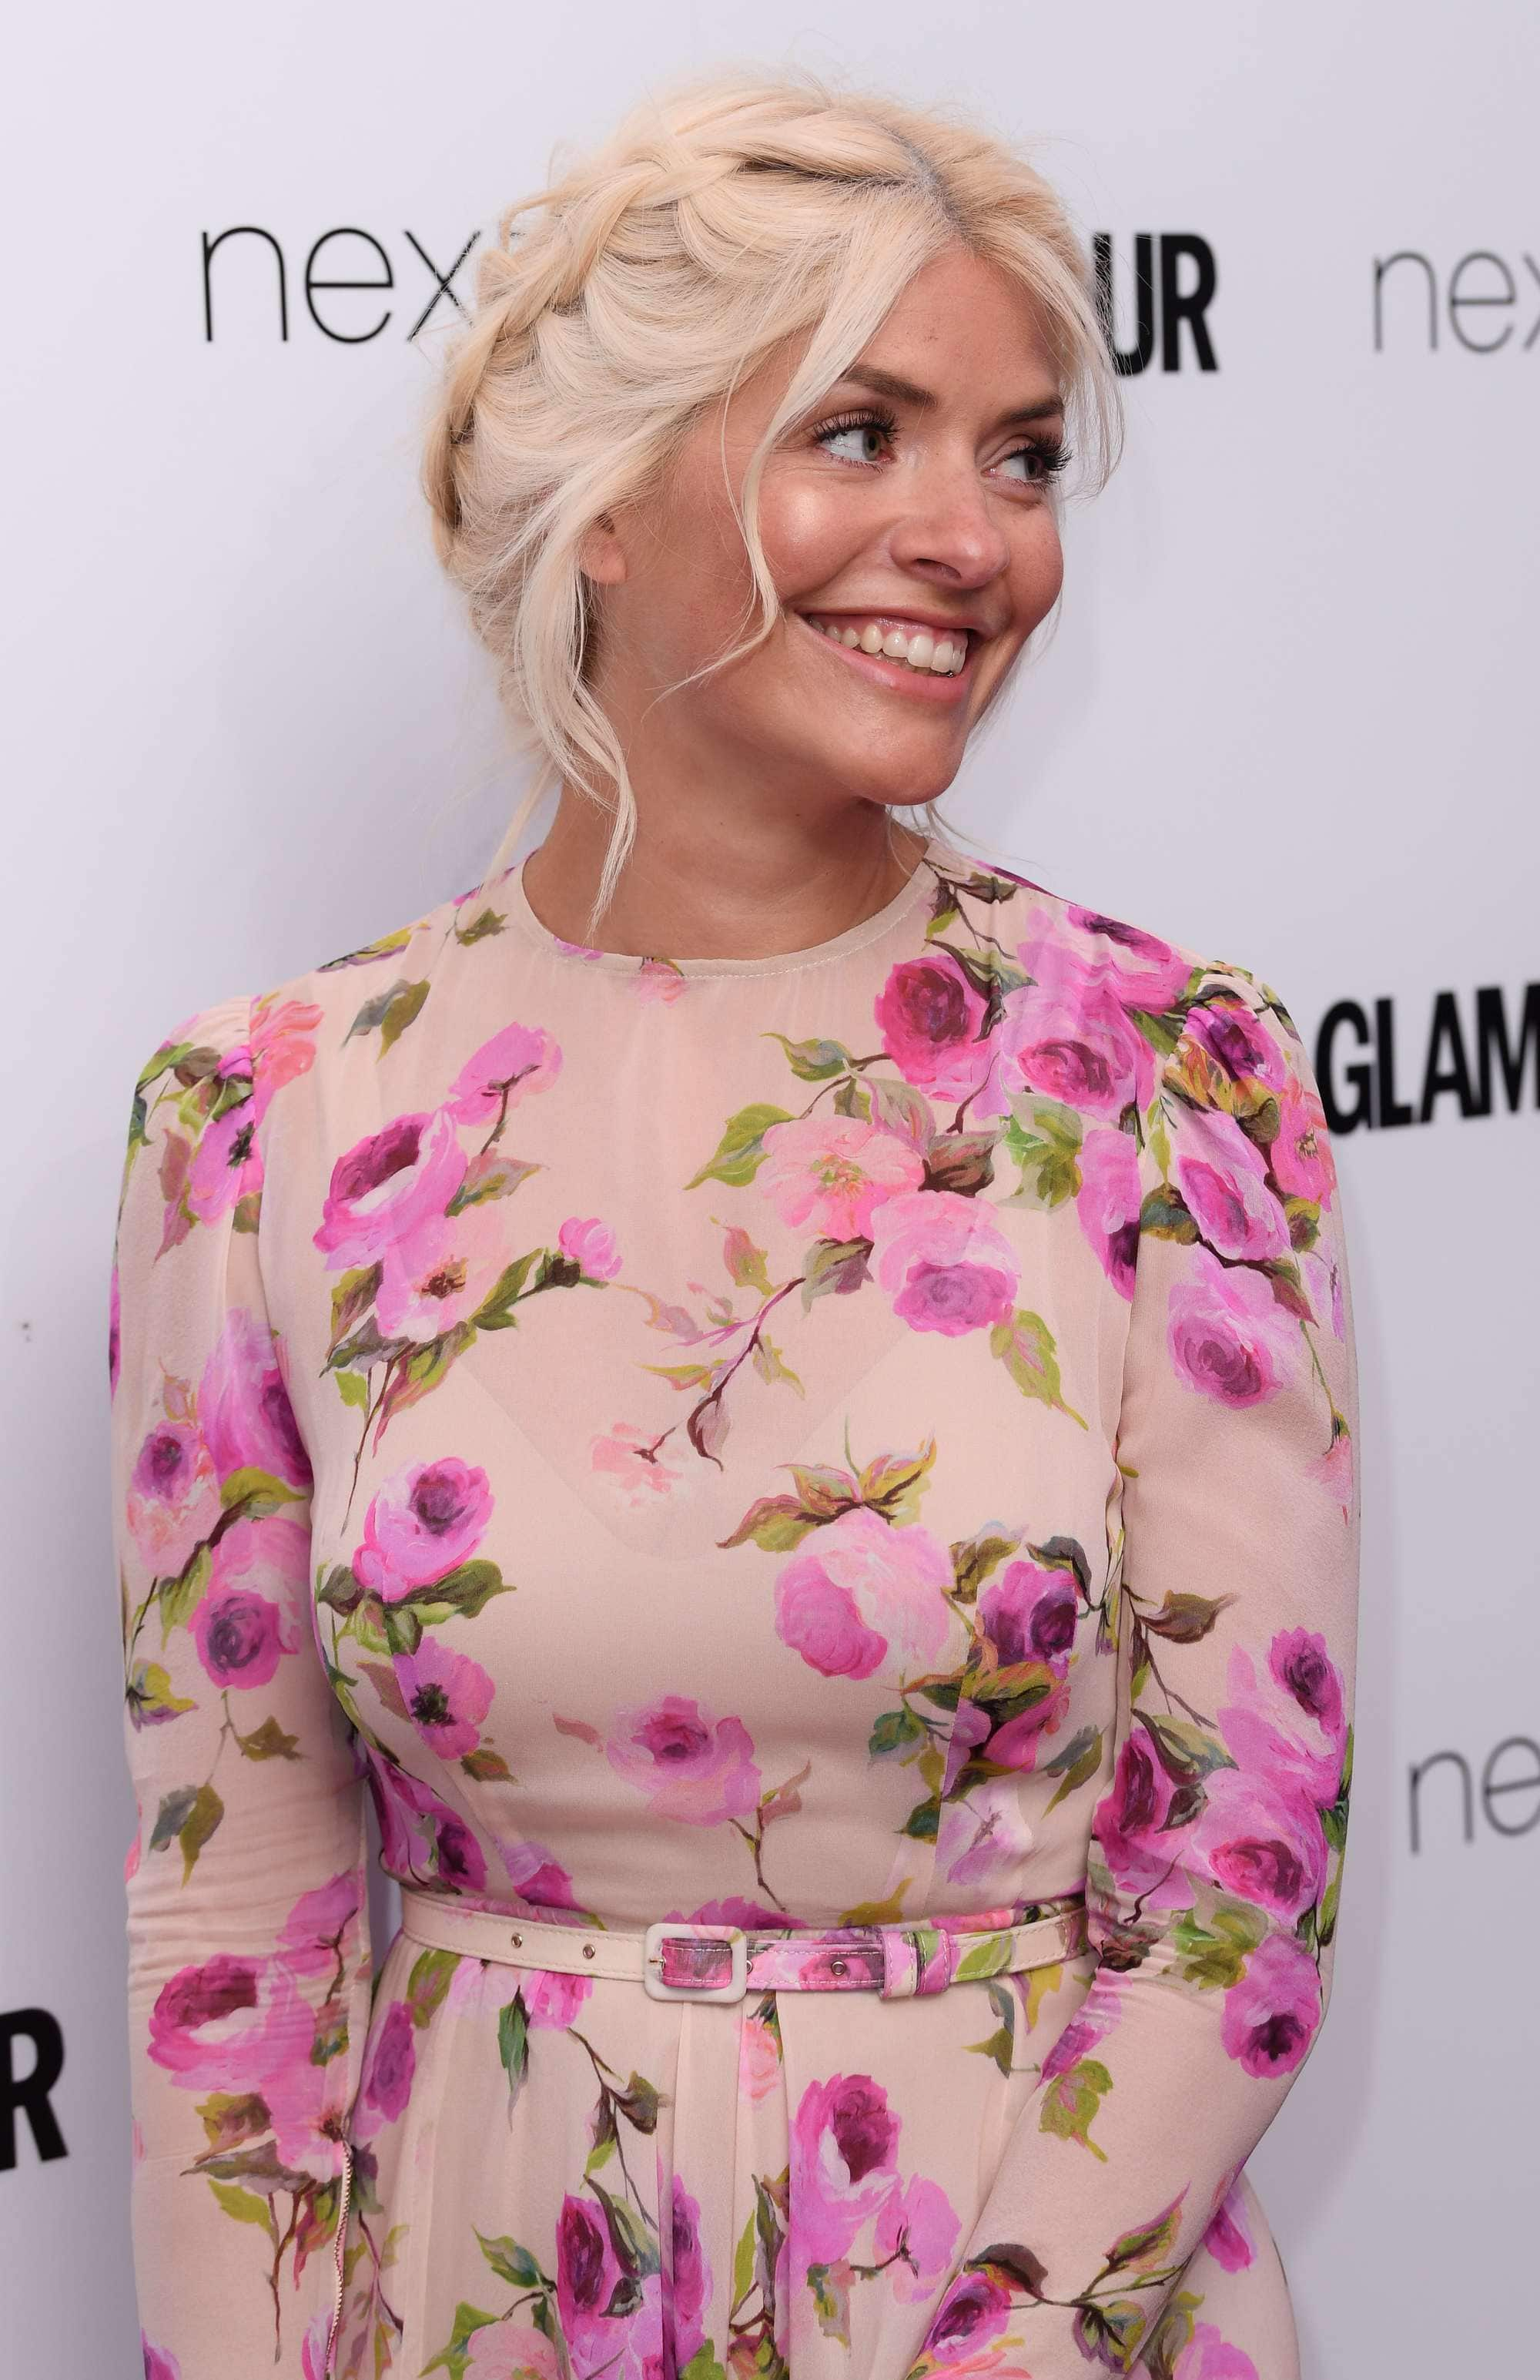 Holly Willoughby light blonde milkmaid braid